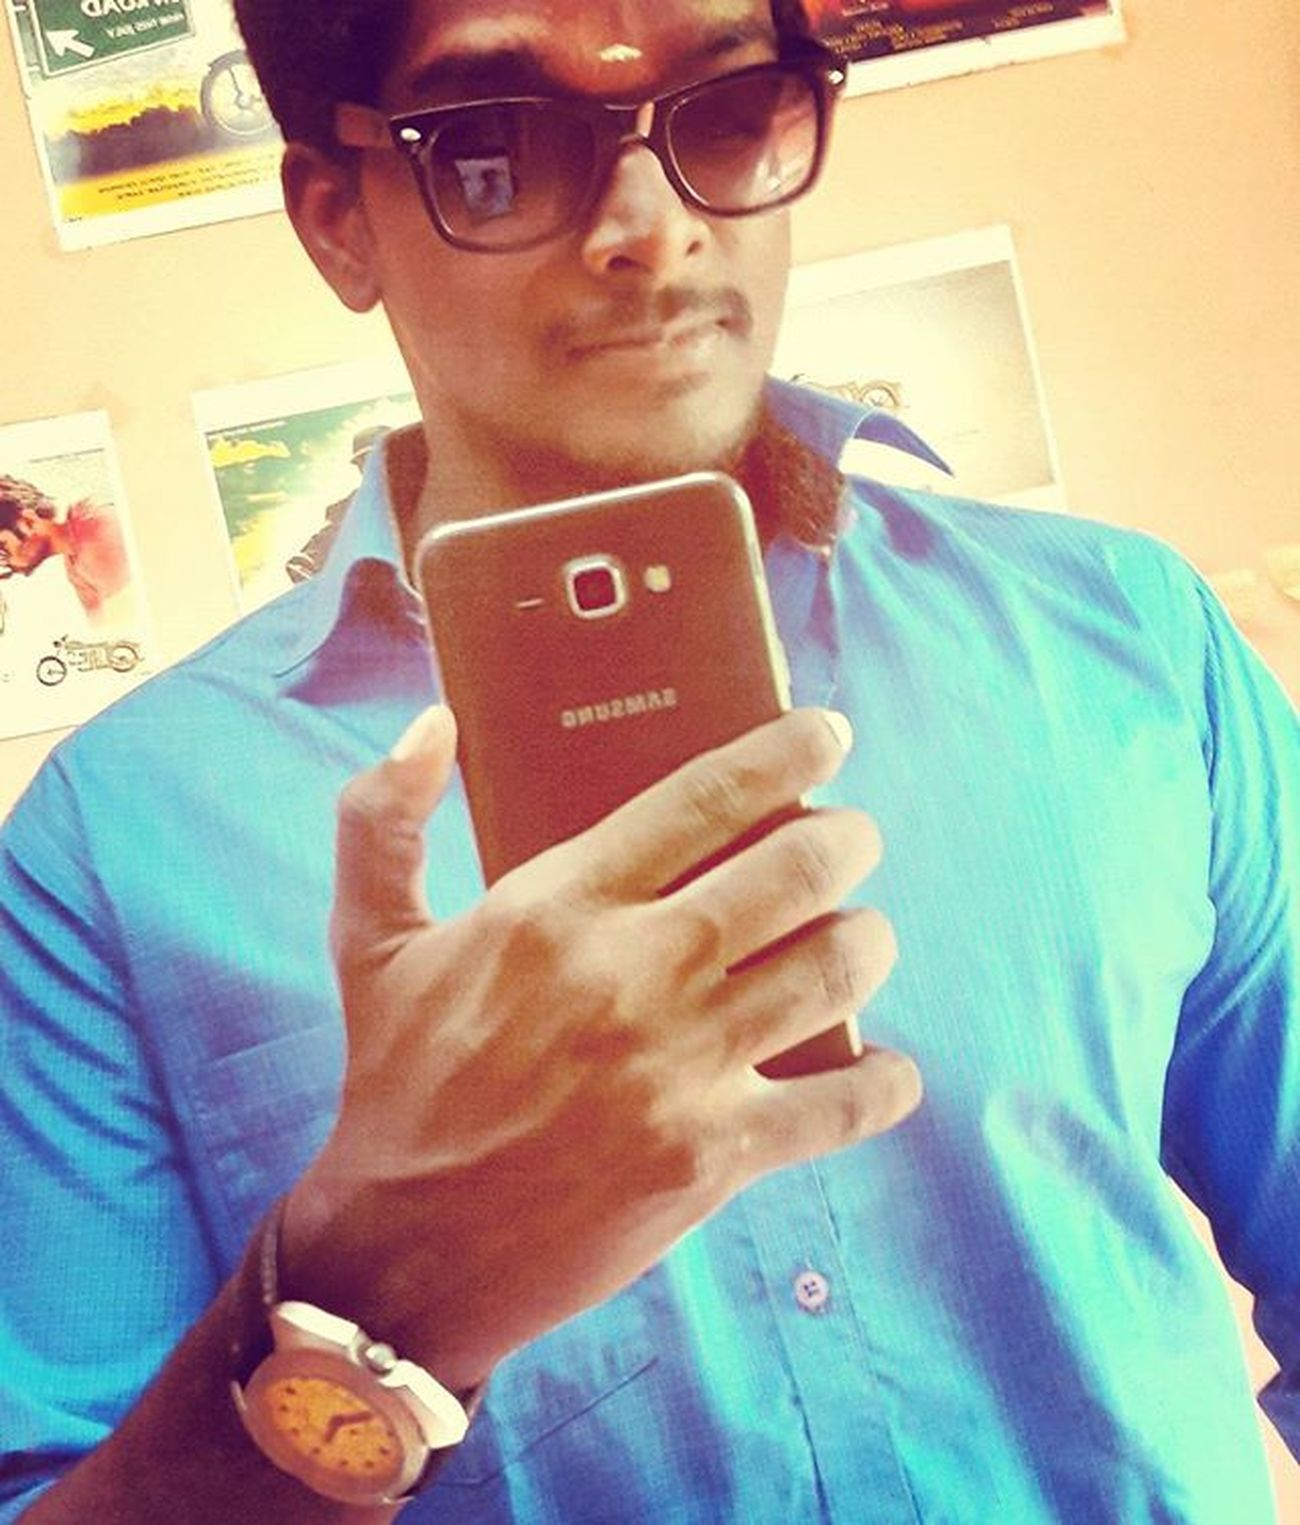 Selfie a day, keeps depression away 😜 Mirrorselfie Newmobile Samsung J7 Sunglass  Vincentchase Studio Innomad Graphicdesigner Filmmaker Biker Royalenfield Classic500 Mogappair Chennai Tamilnadu India Karaikal